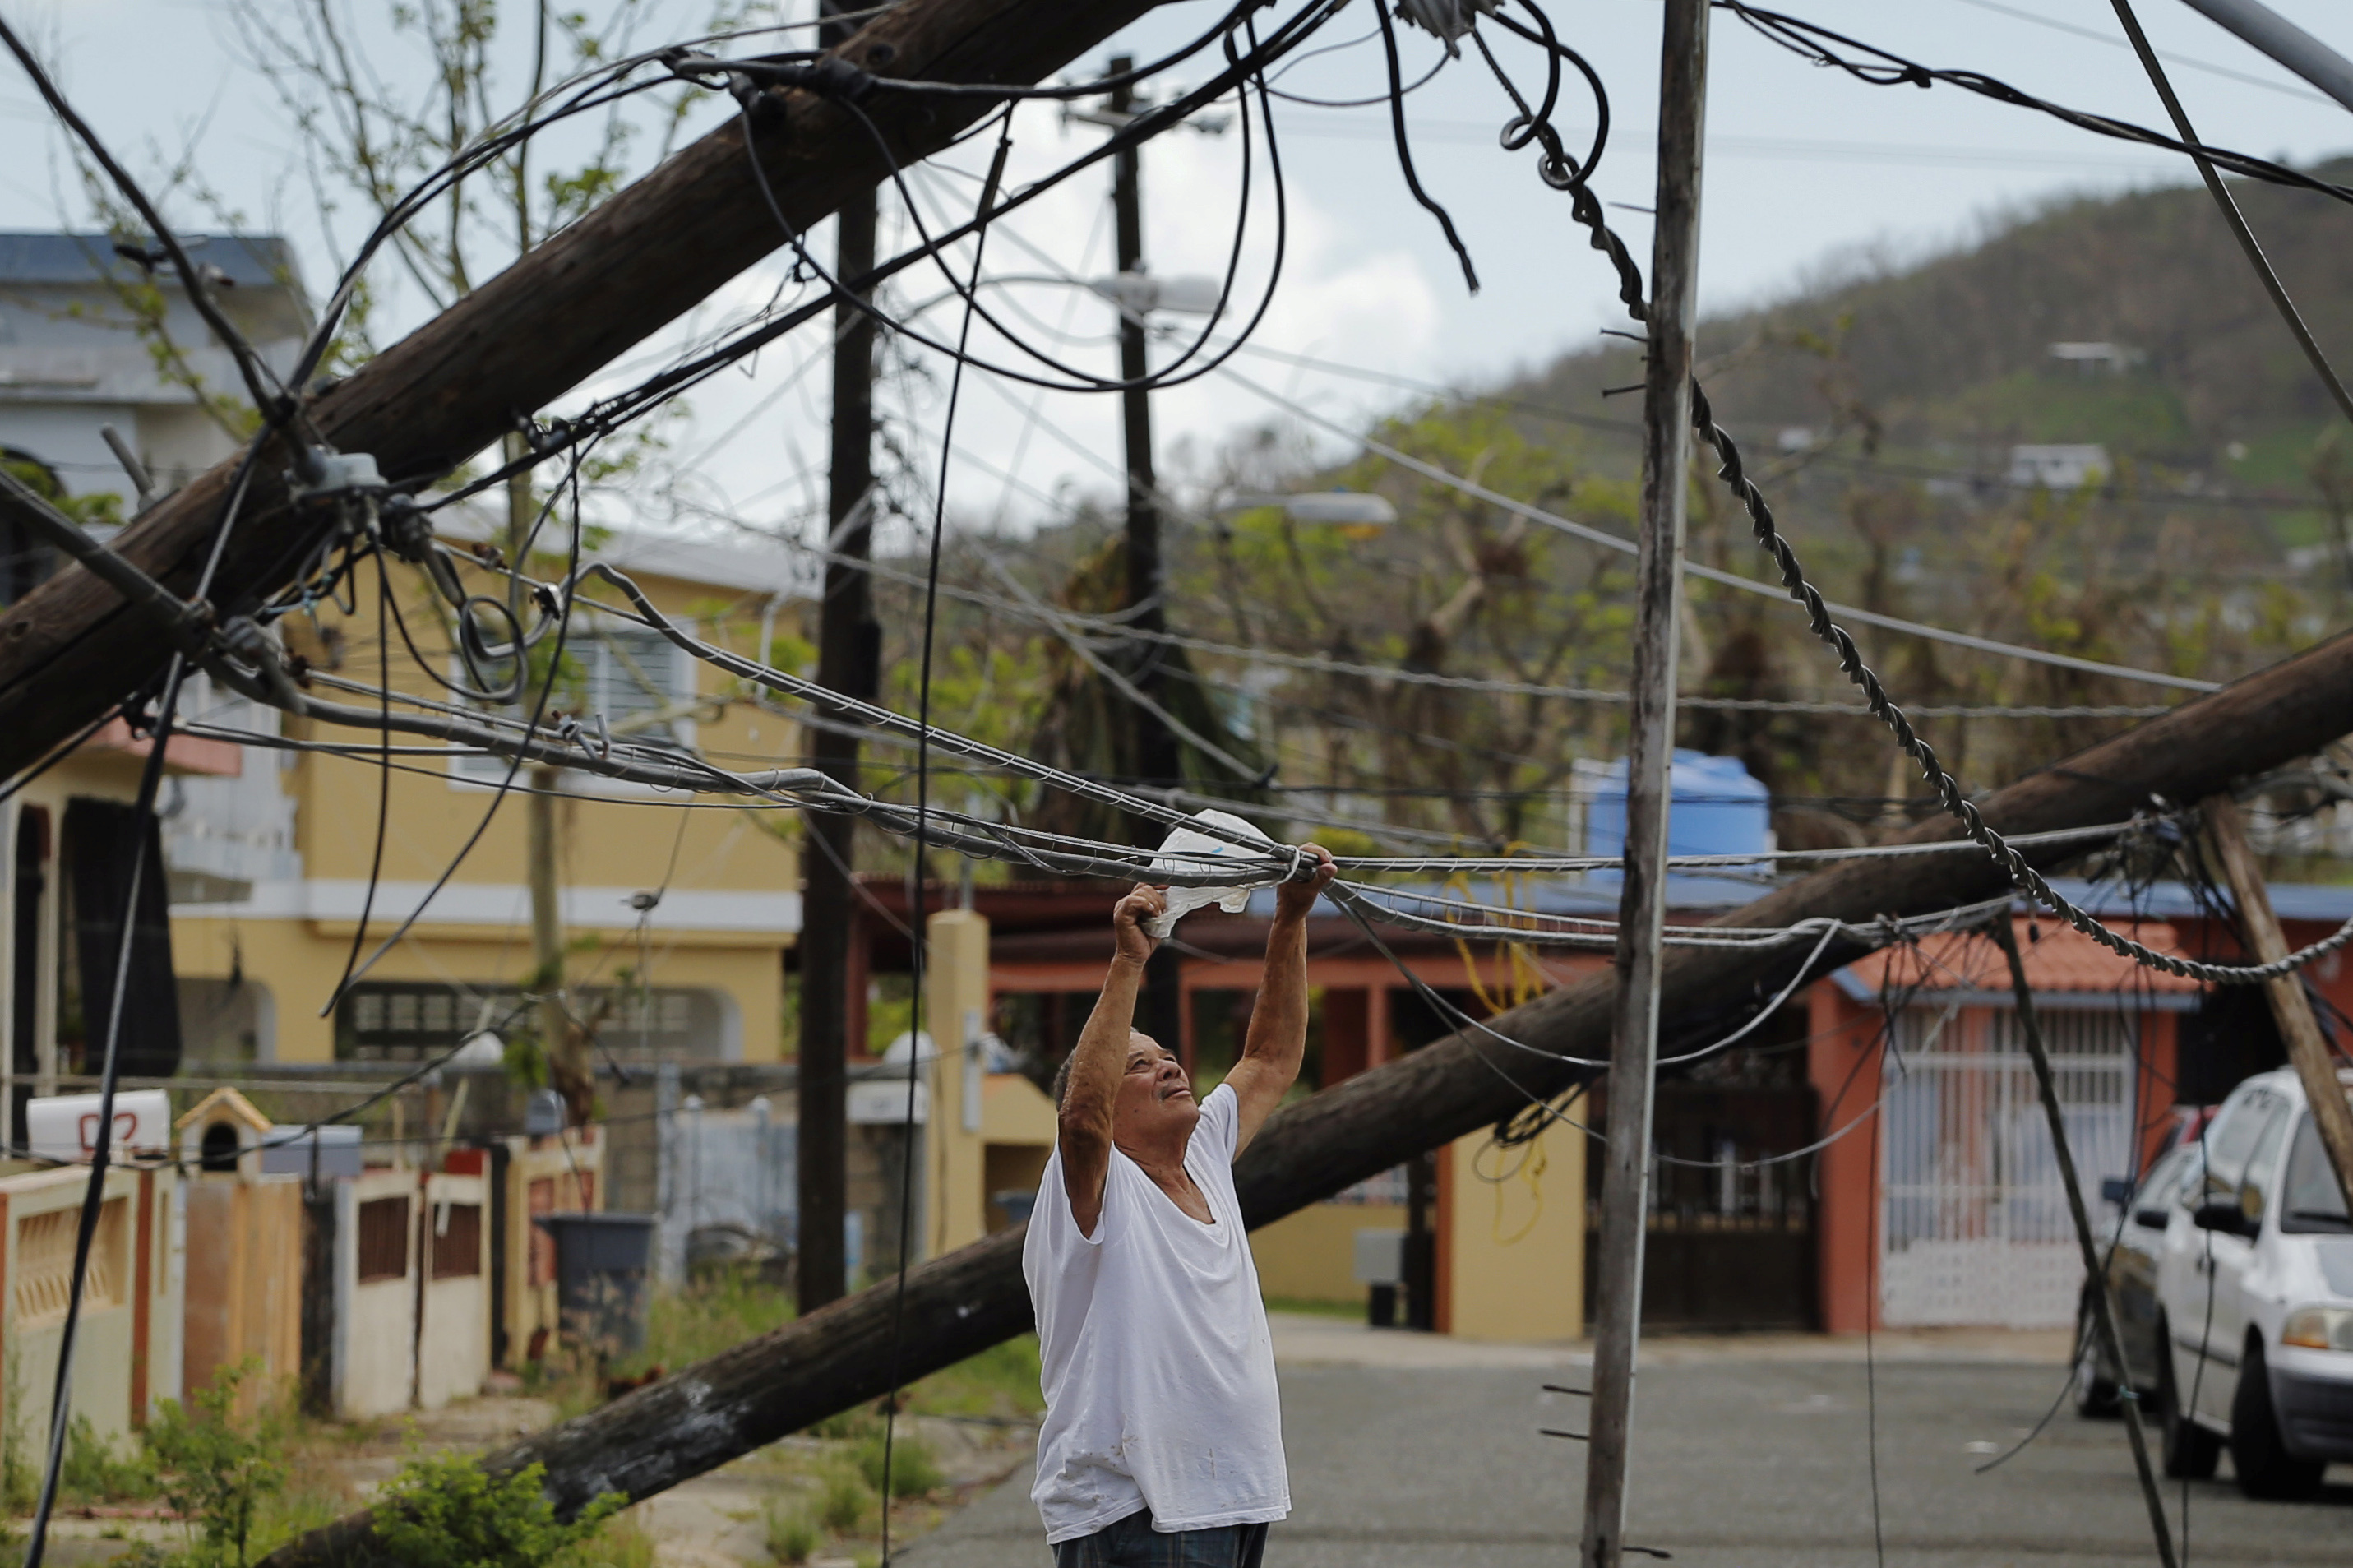 A resident uses a plastic bag to move downed power cables so he can drive underneath them in a neighborhood following Hurricane Maria in Ceiba, Puerto Rico, October 4, 2017. Picture taken October 4, 2017.